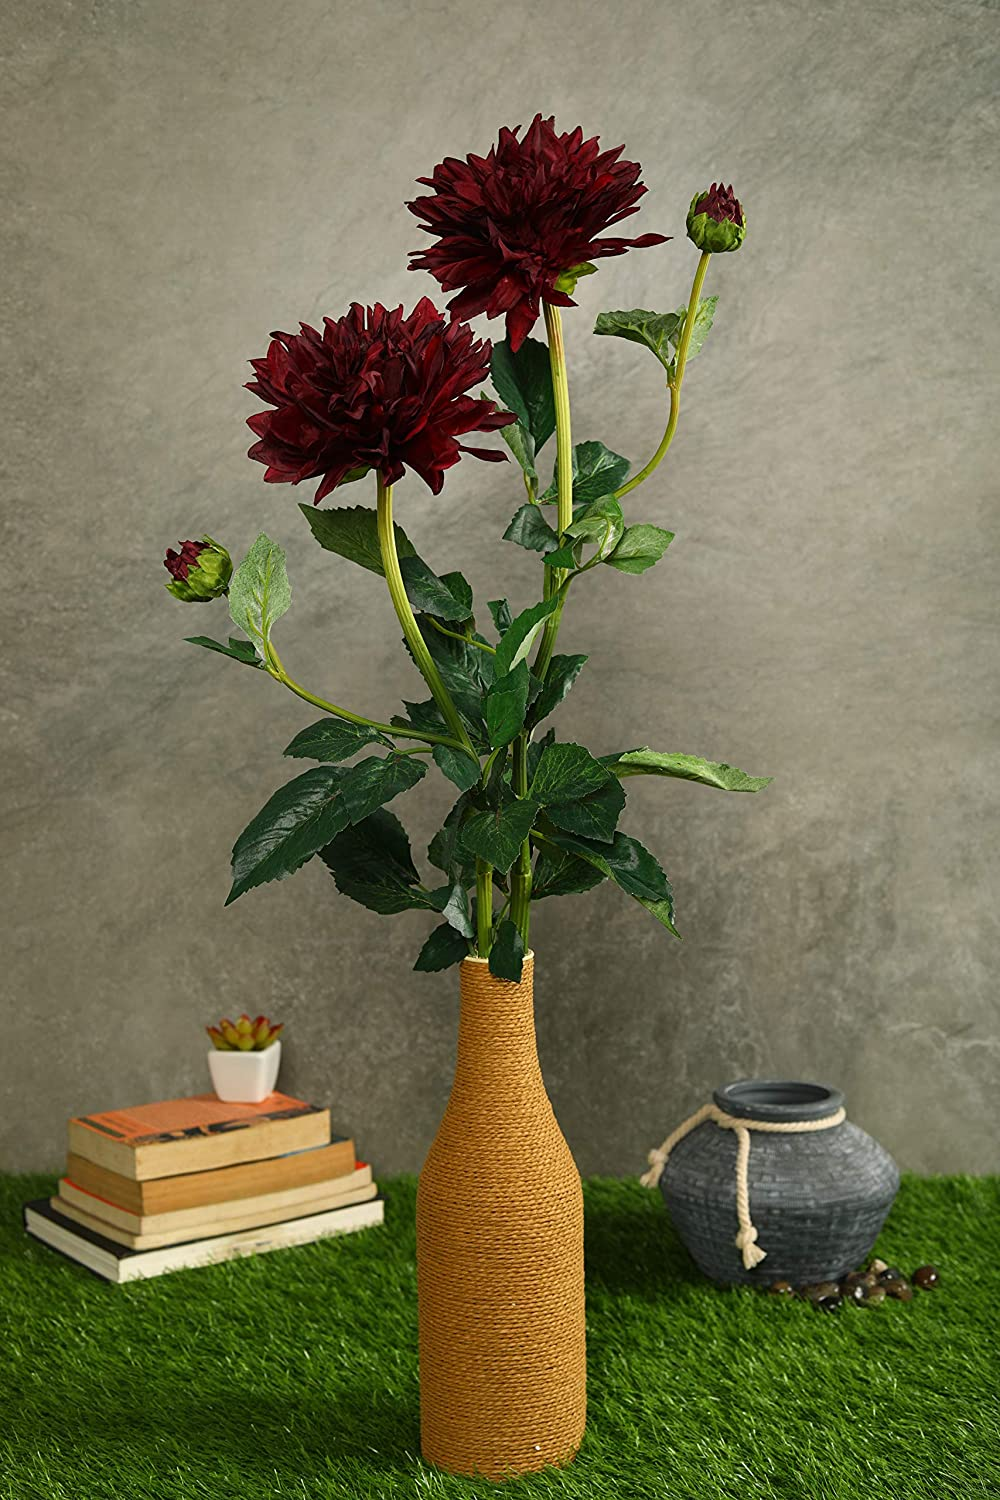 PolliNation Decorative Natural Looking Dahlia Artificial Flower for Home Decor (Pack of 2, 30 INCH) - Artificial Flowers & Plants - PolliNation